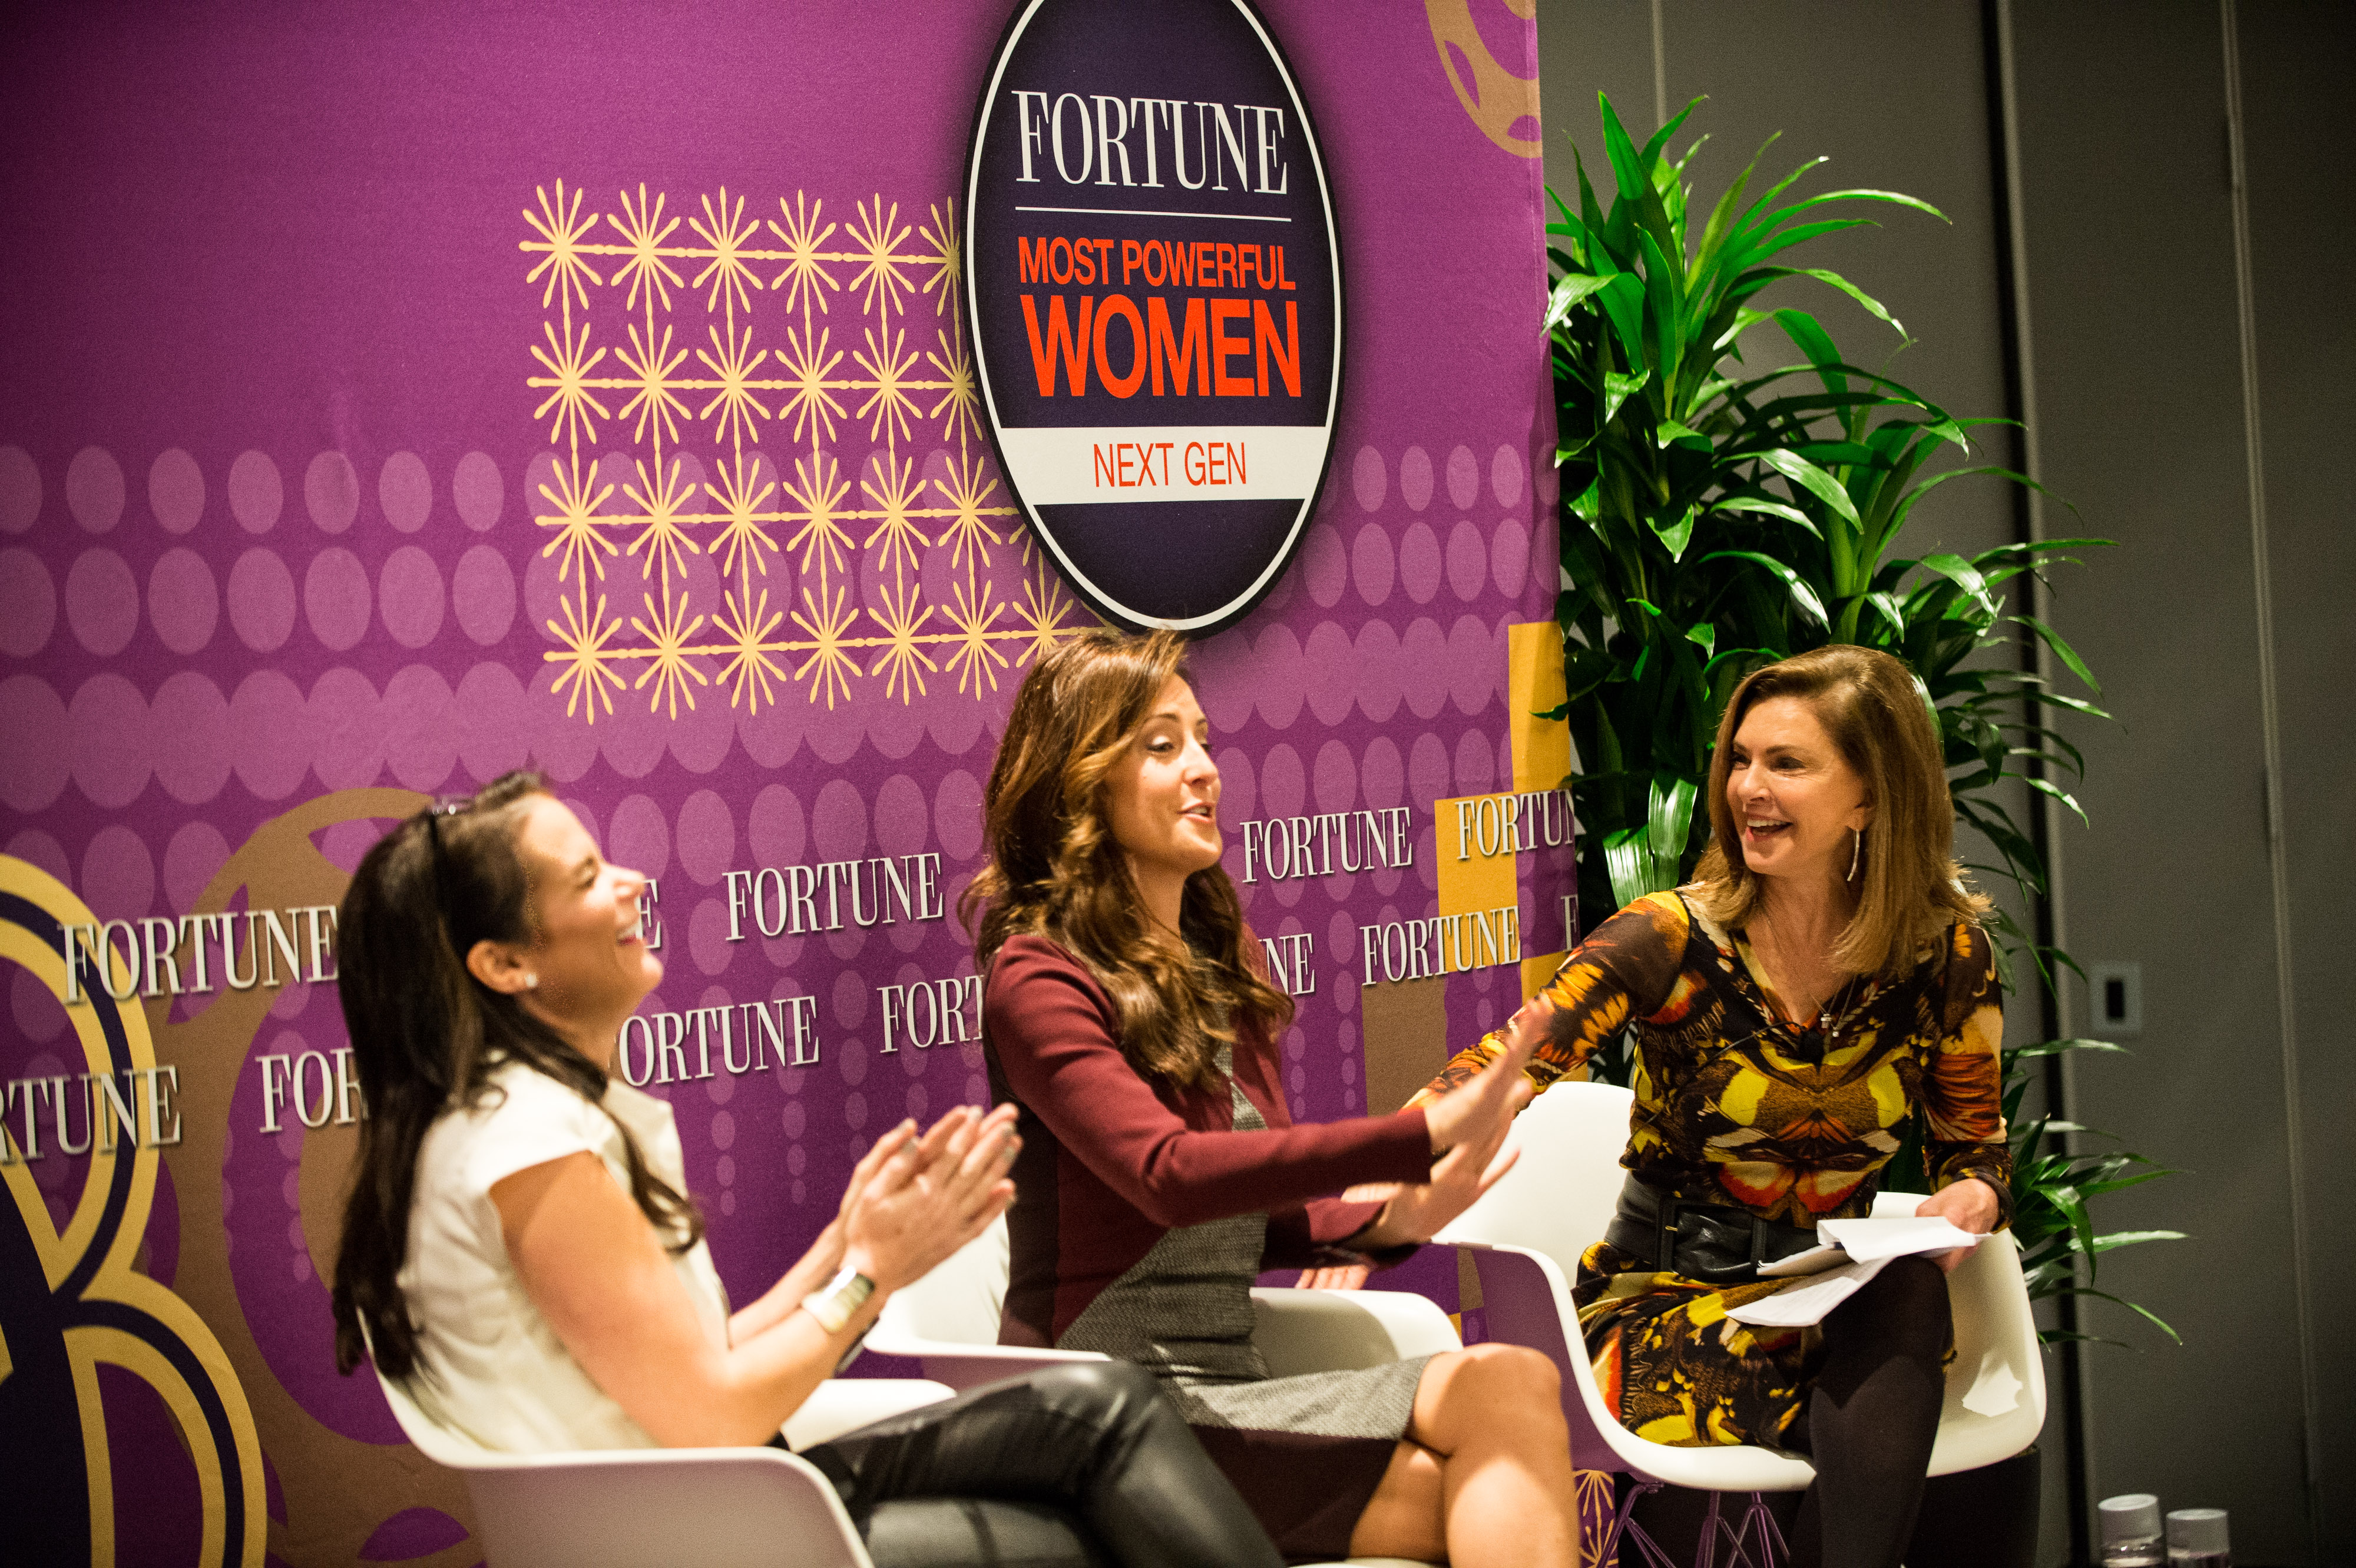 Nicole Williams, the career expert at LinkedIn and Brandee Barker, a co-founder and partner at Pramana Collective, give social media tips at MPW Next Gen